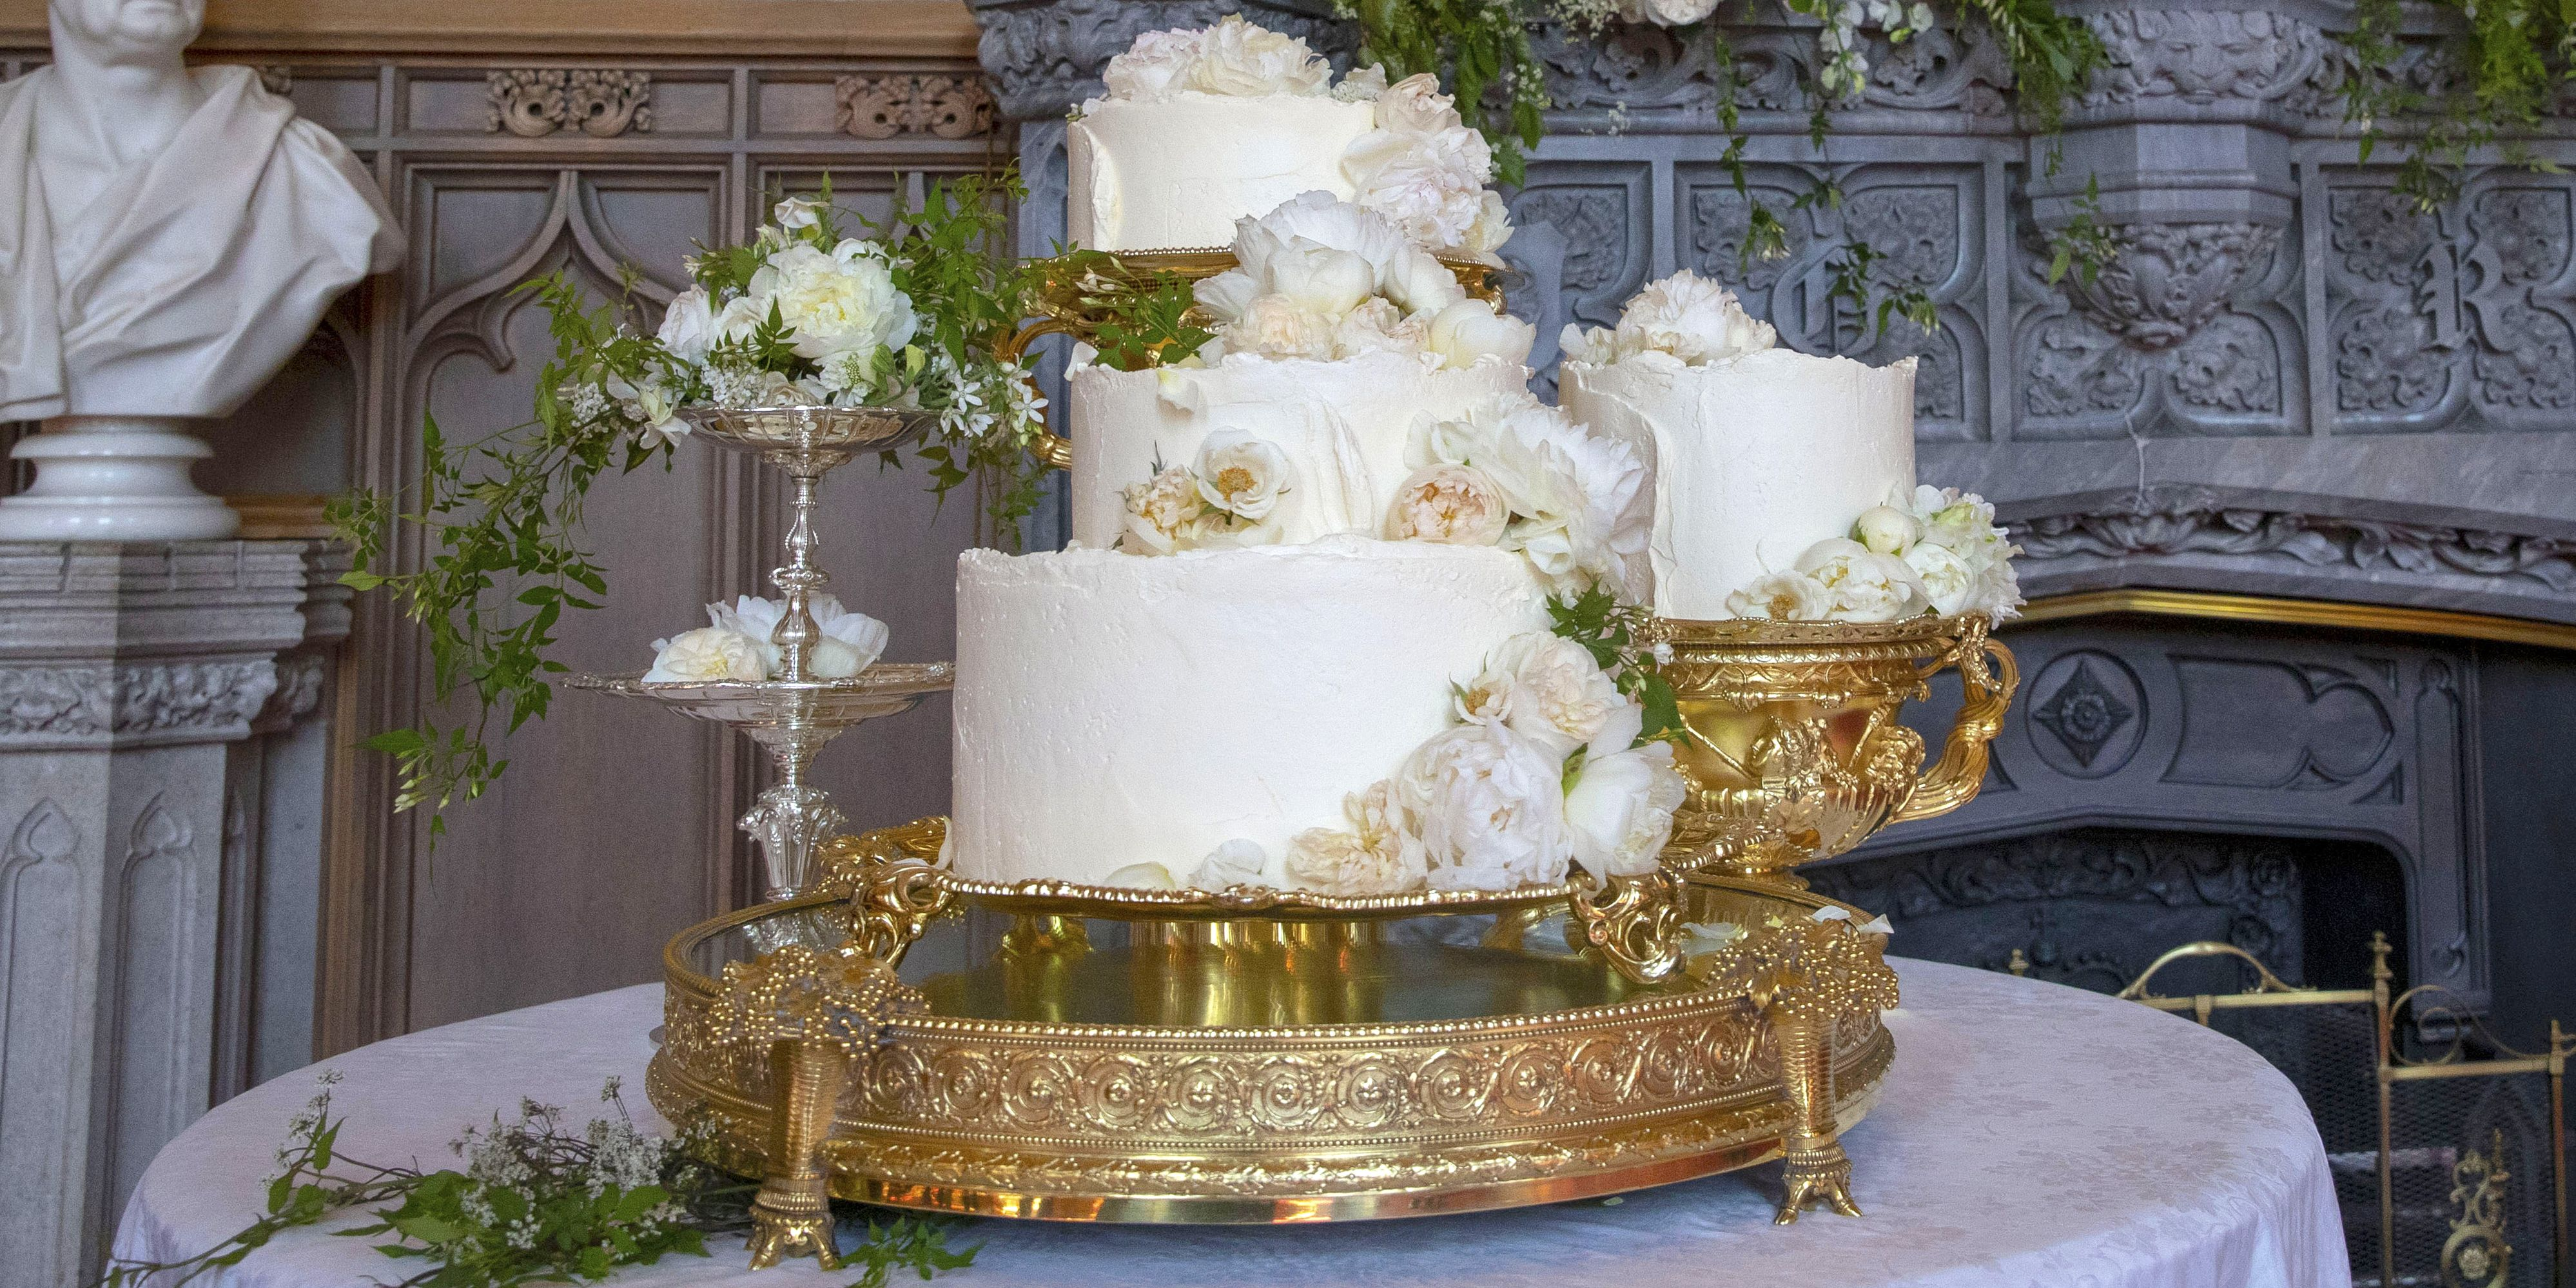 pictures of royal wedding cake 2018 prince harry and meghan markle wedding cake who is 18428